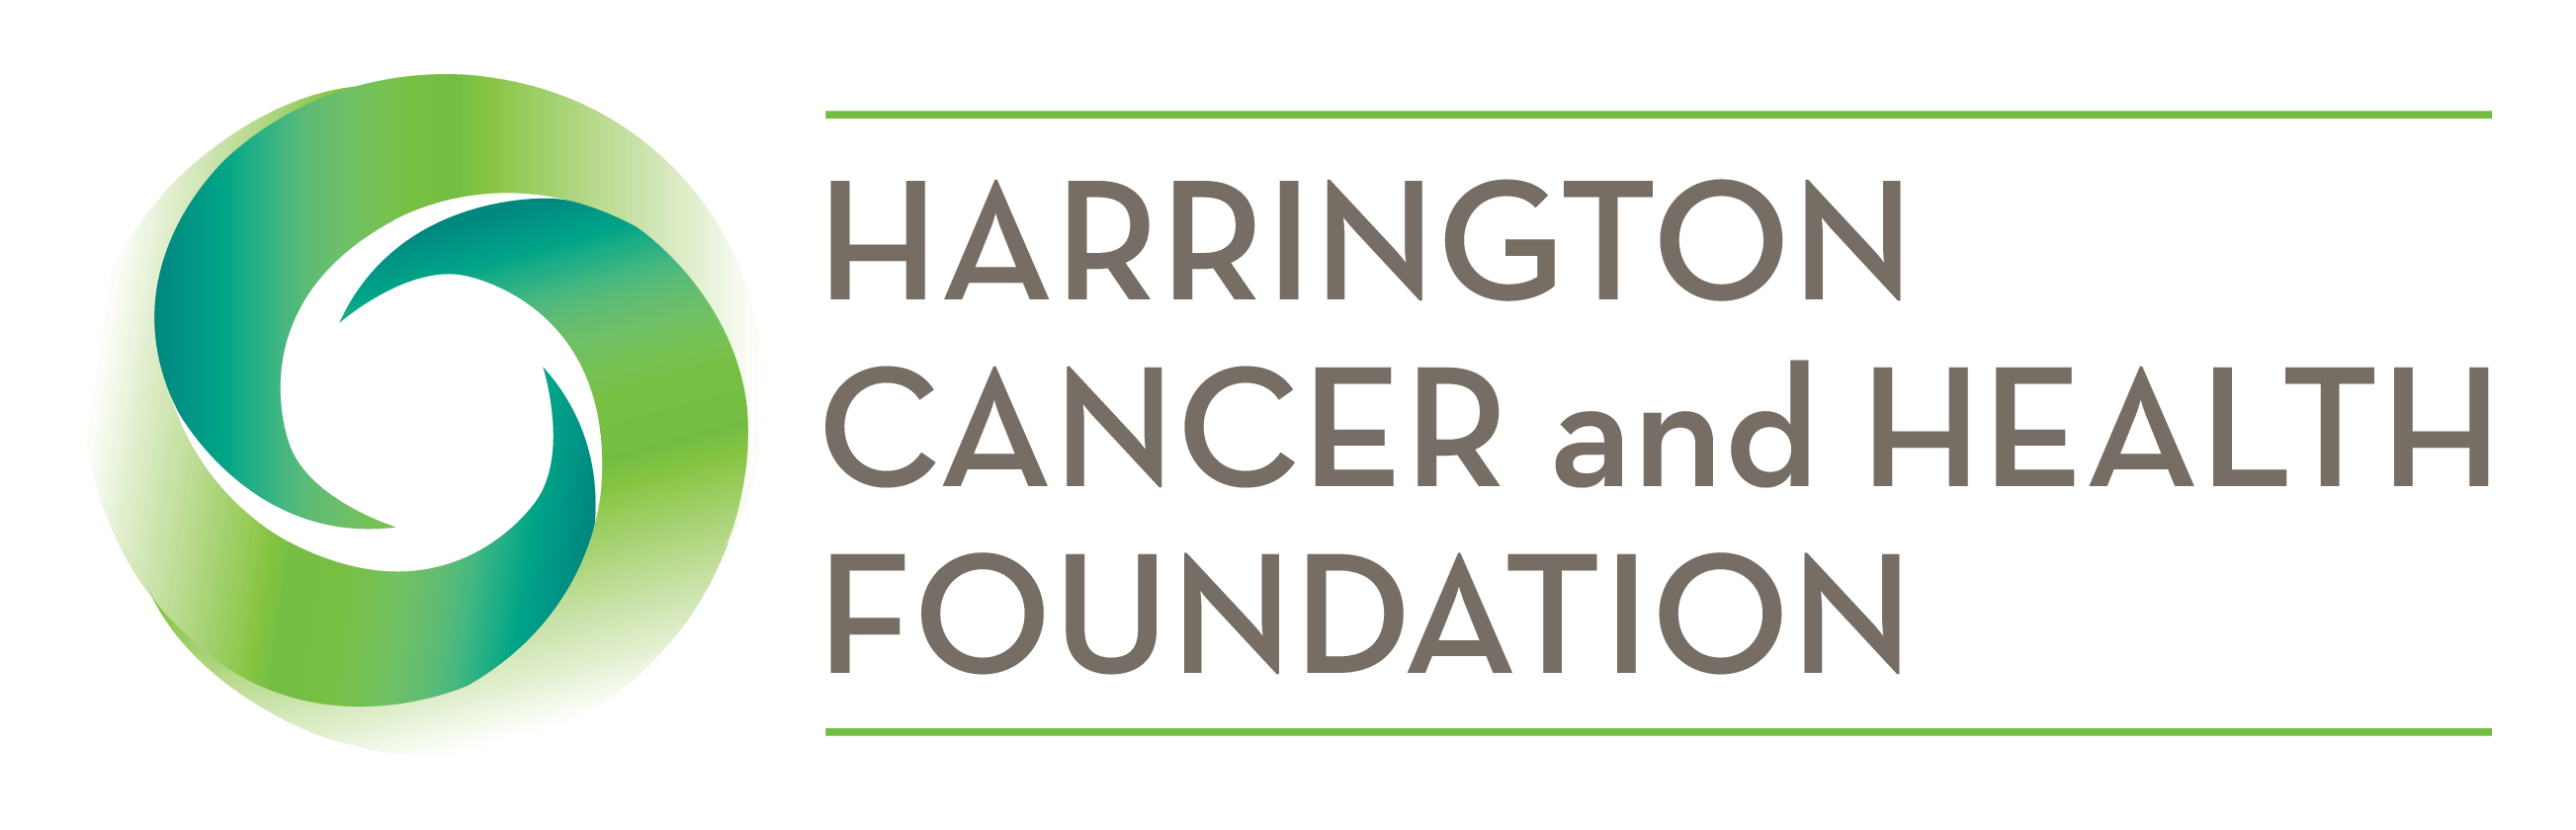 Harrington Cancer and Health Foundation